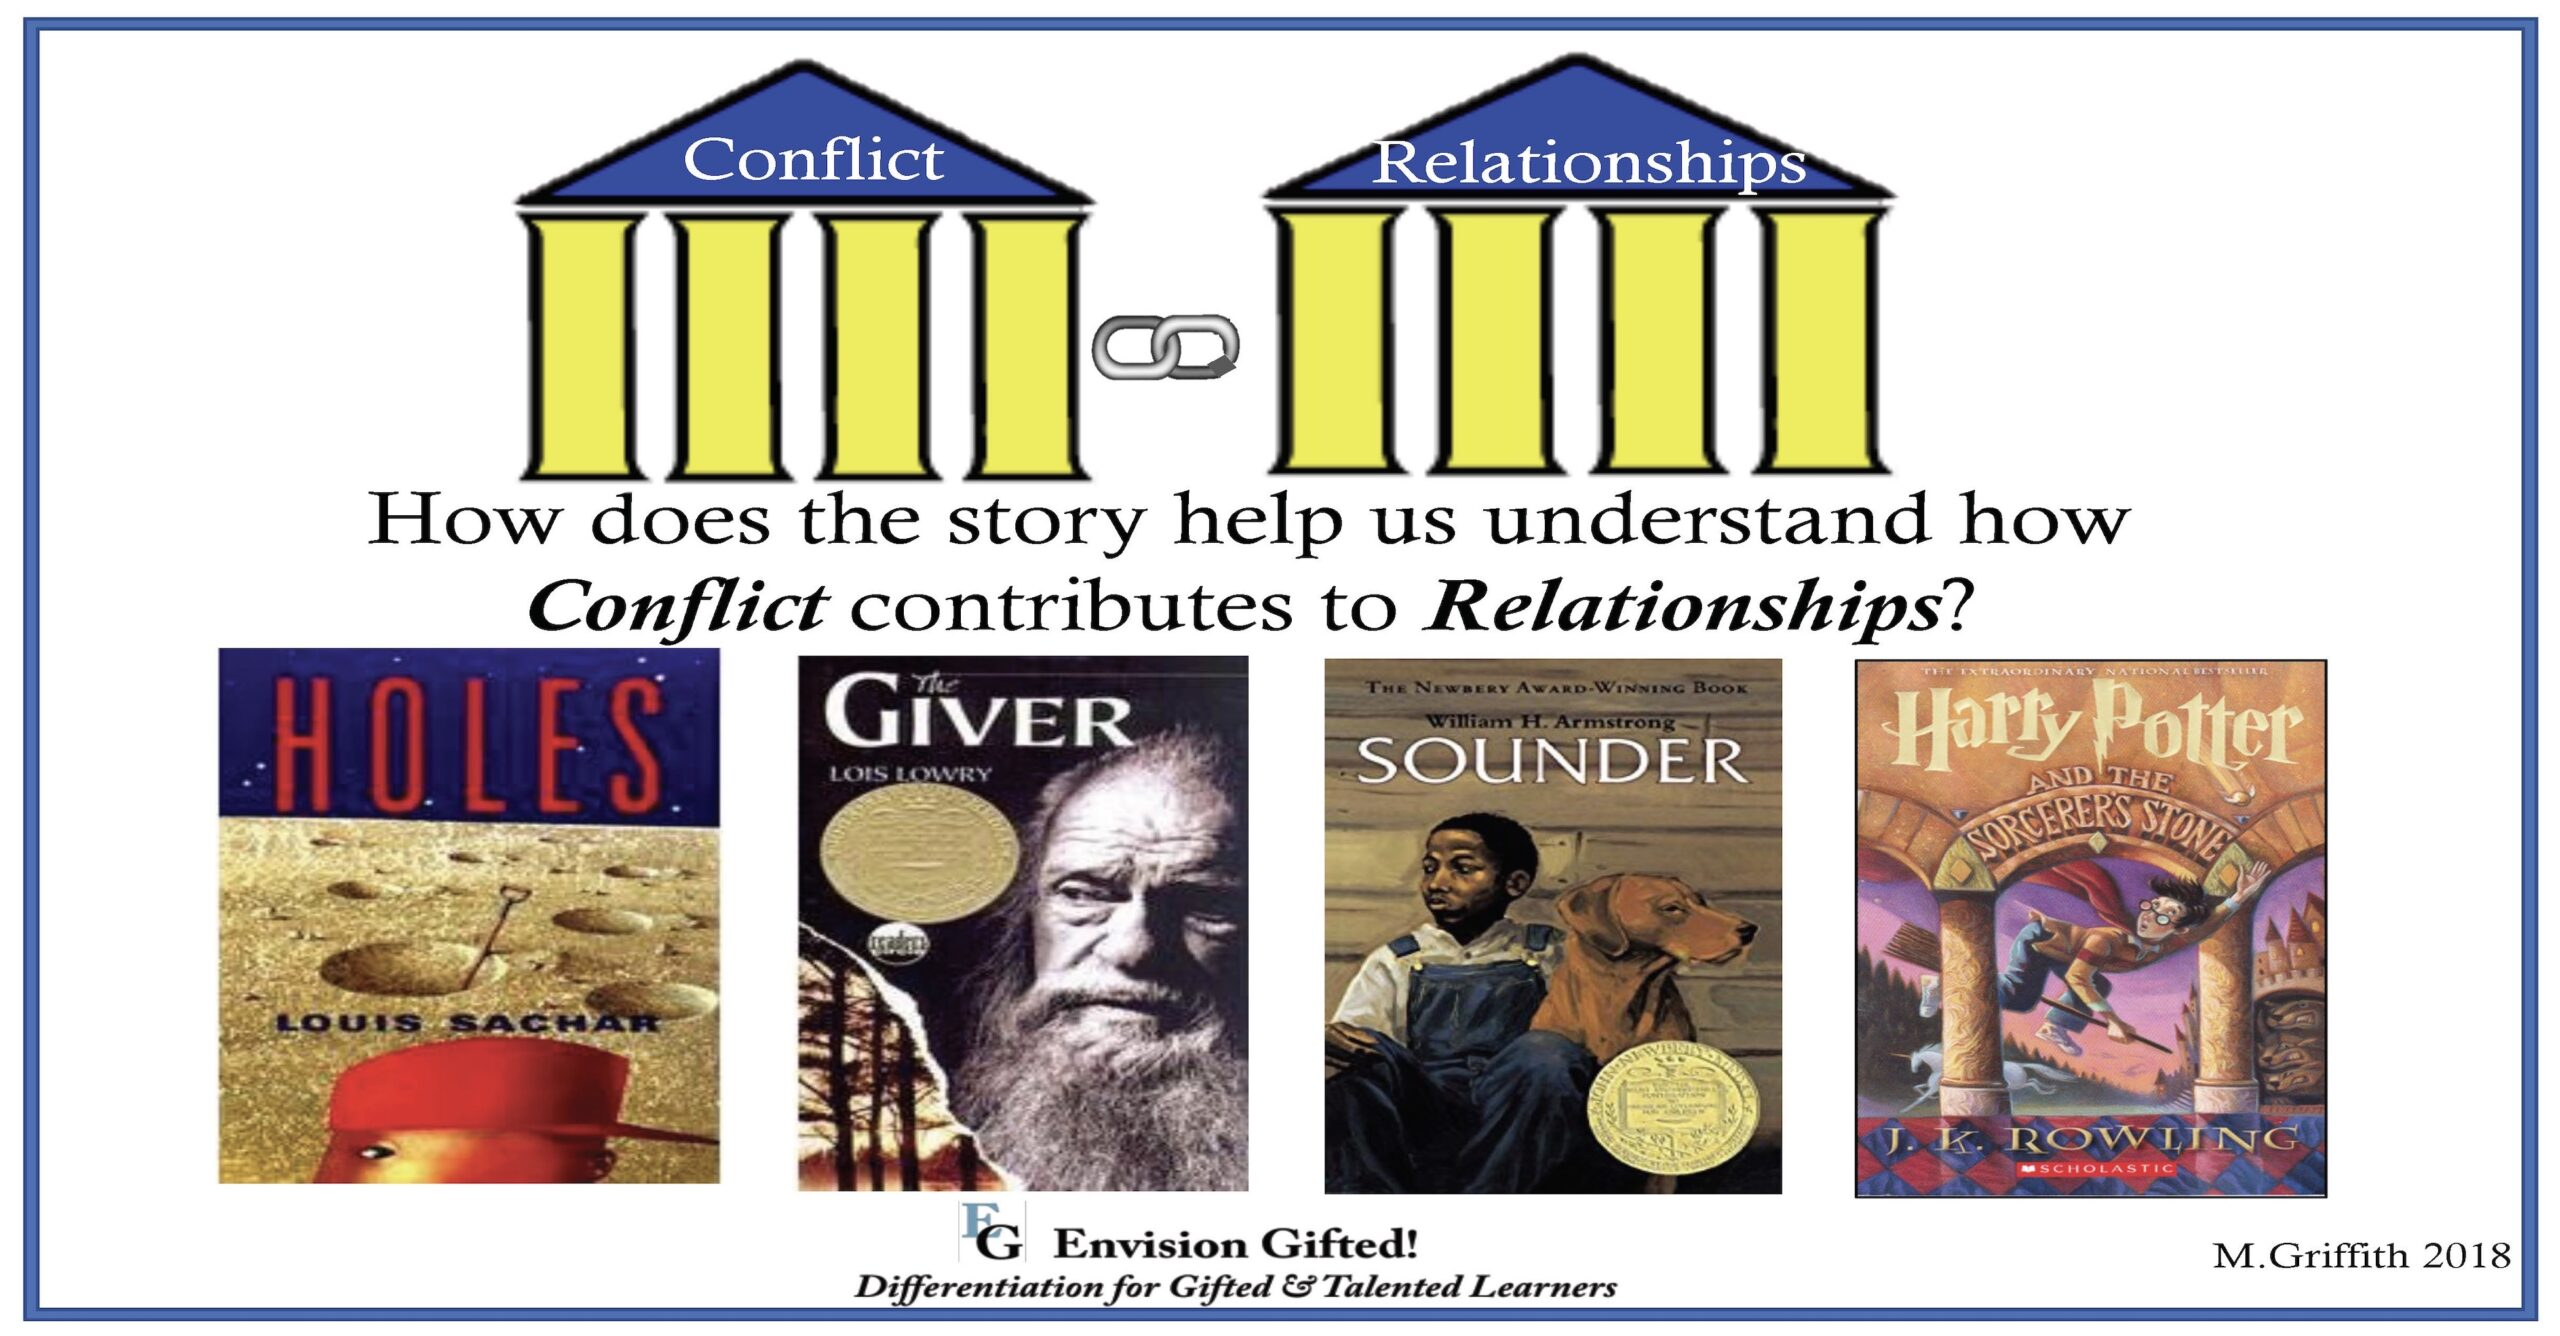 Envision Gifted. Universal Theme- Conflict contributes to Relationships